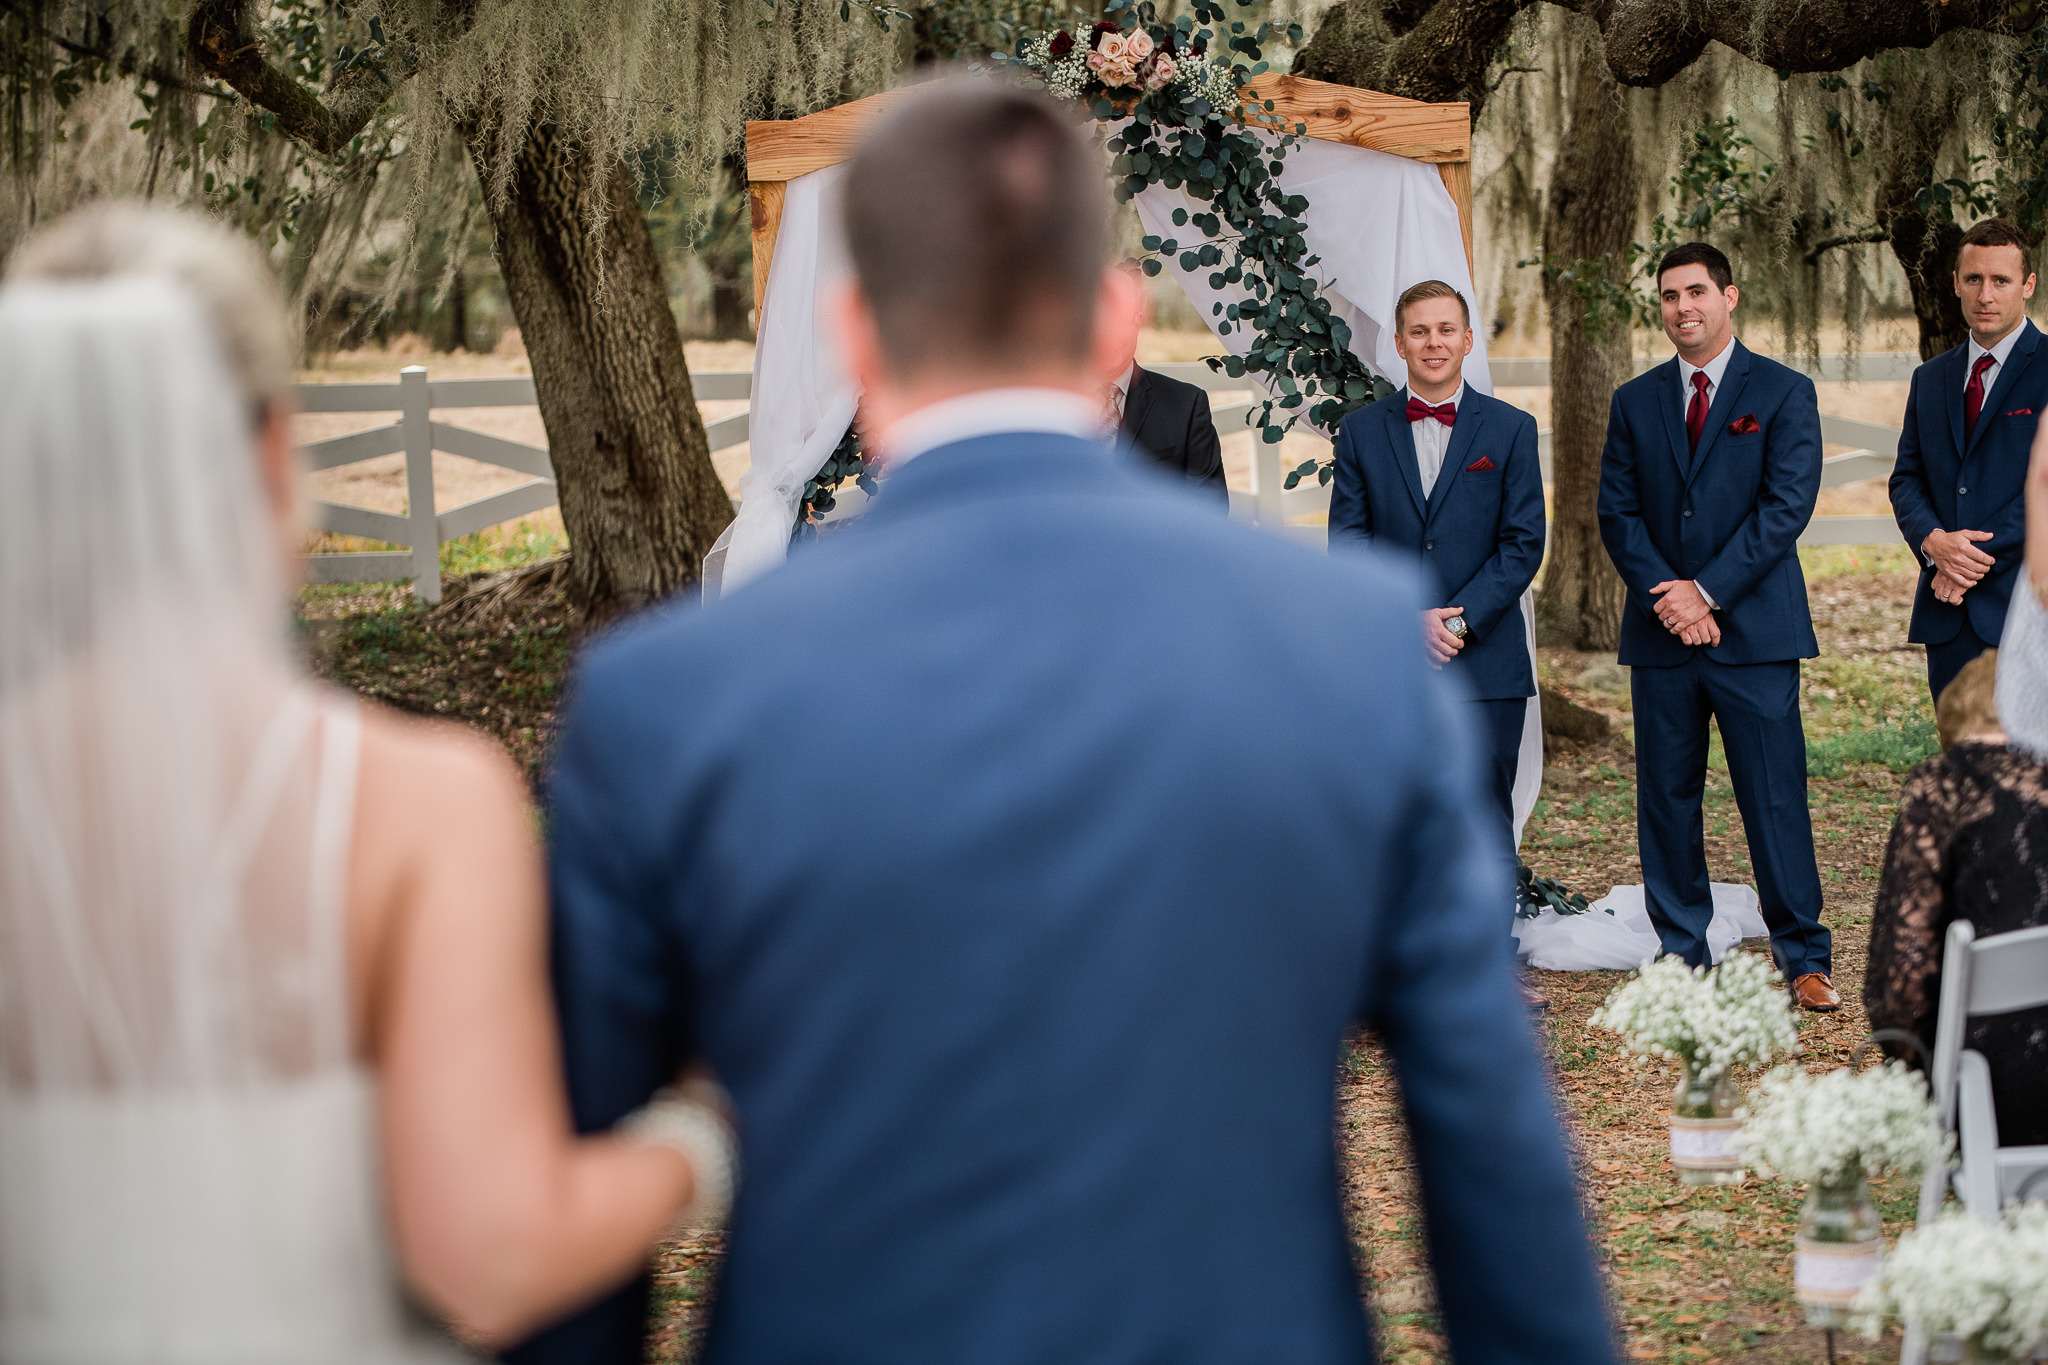 TAMPA_WEDDING_PHOTOGRAPHER_DRMZ_SPARROW_BARN_22.jpg